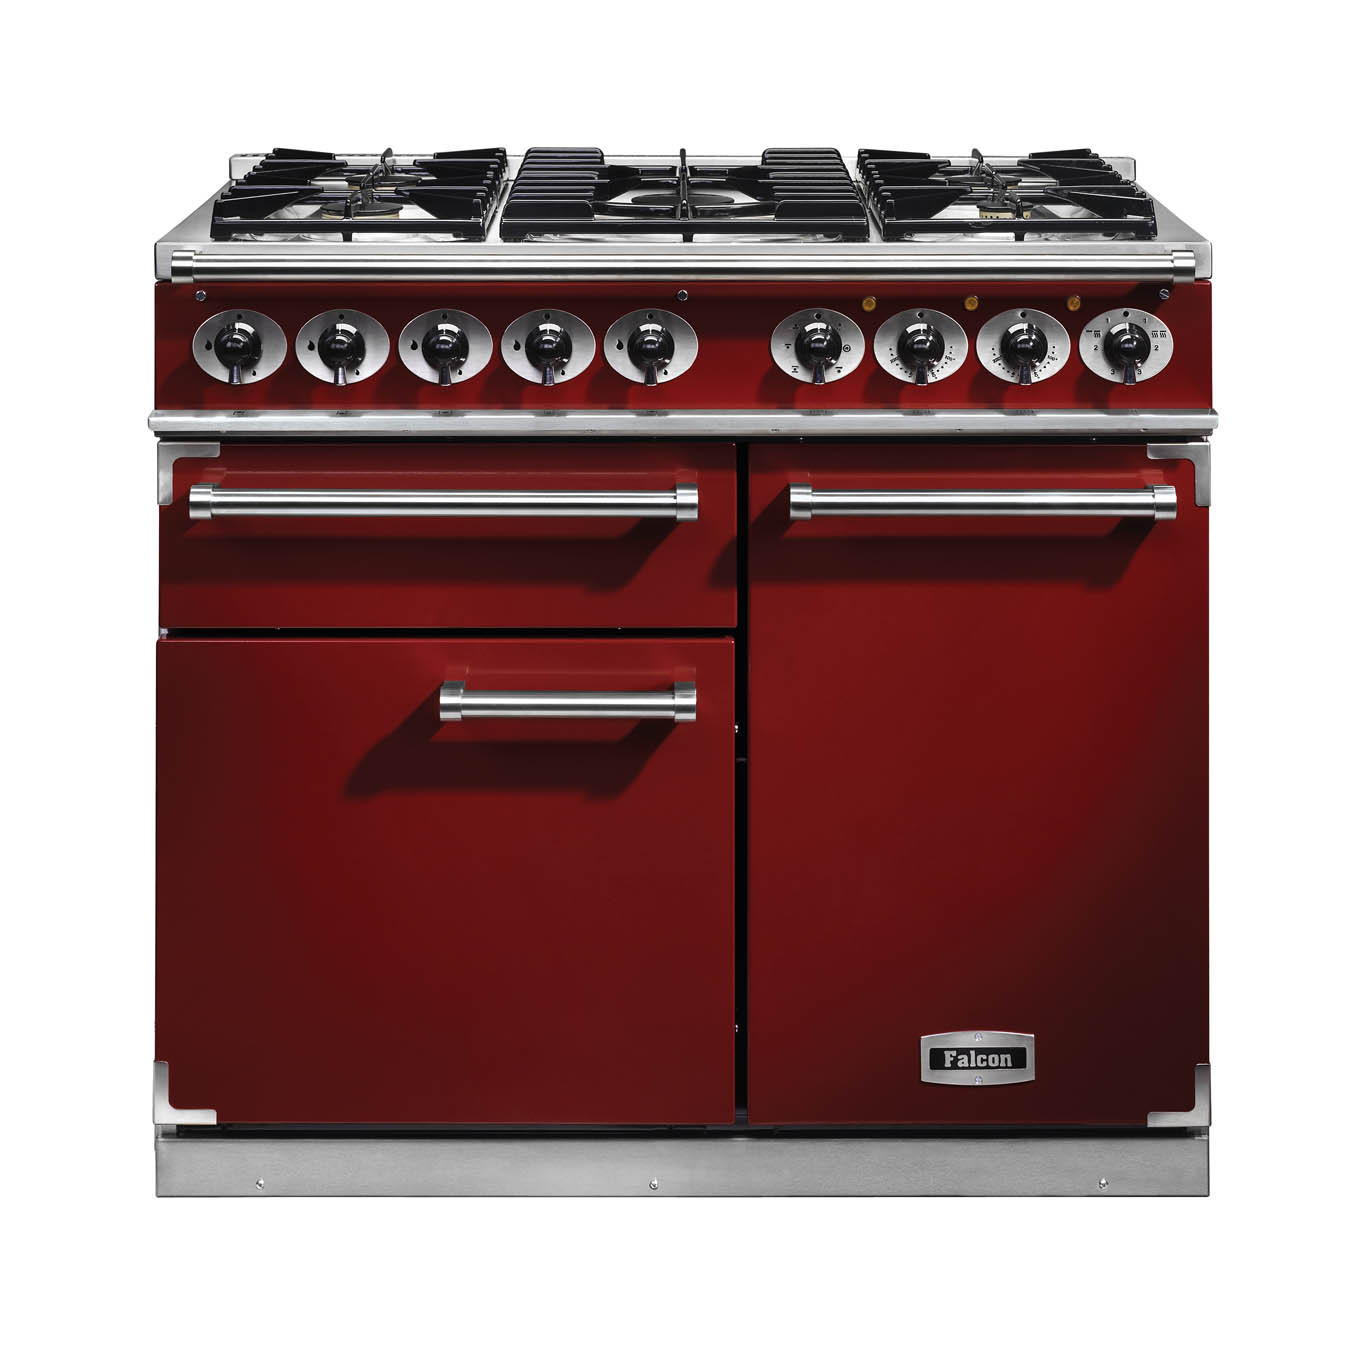 Falcon 1000 Deluxe Dual Fuel Cherry Red Range Cooker with Matt Pan Supports